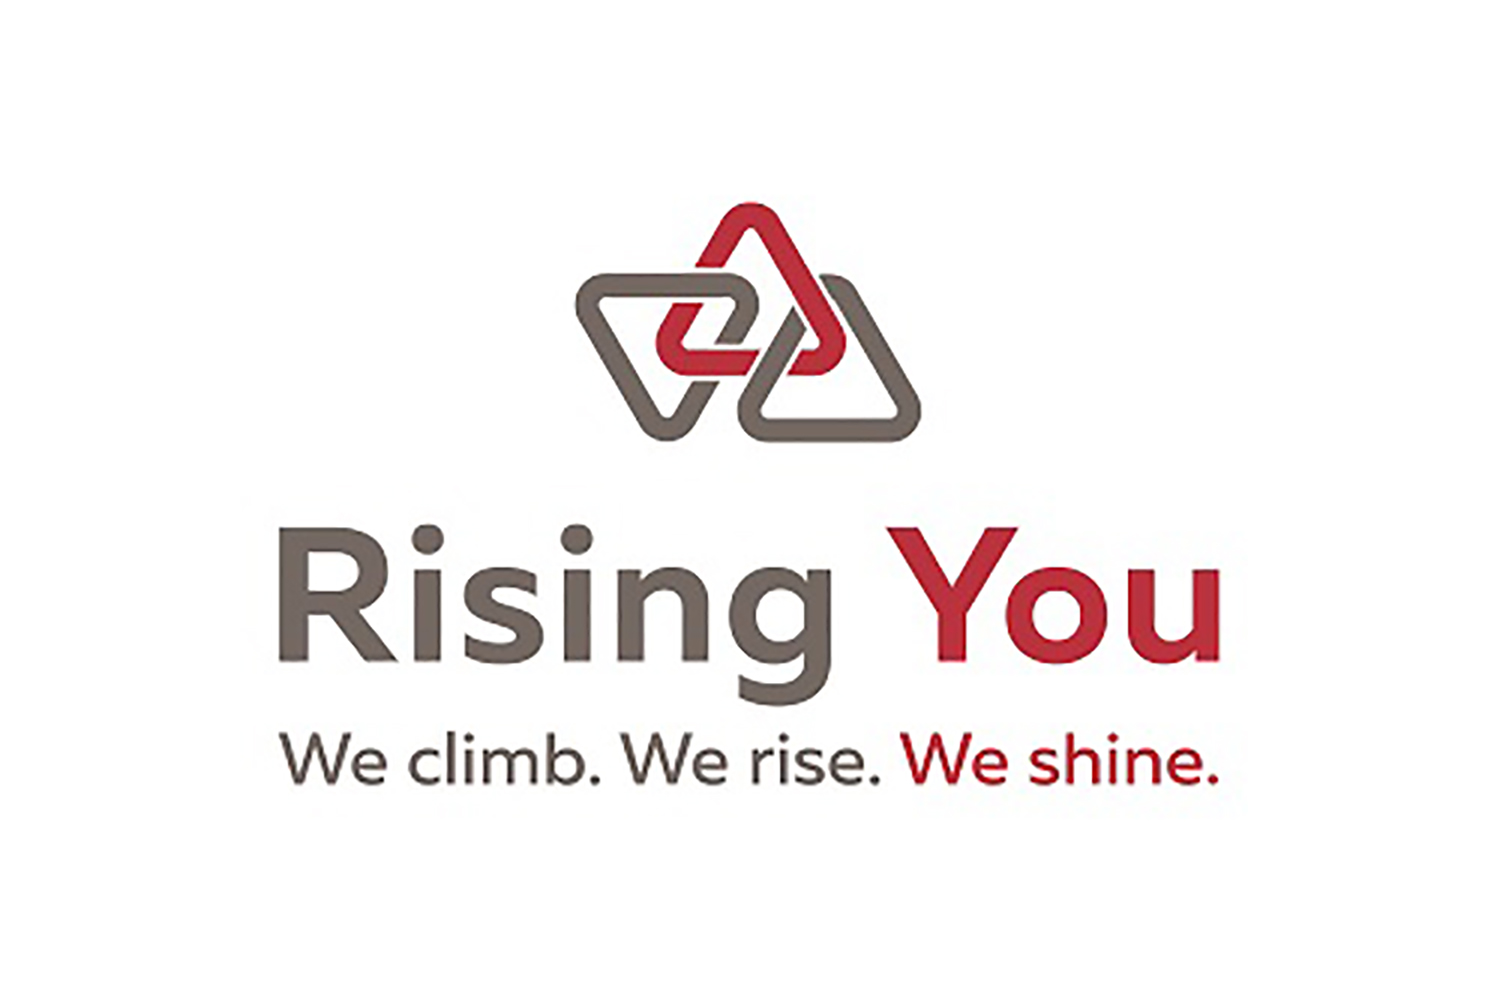 Rising you - we work out - logo